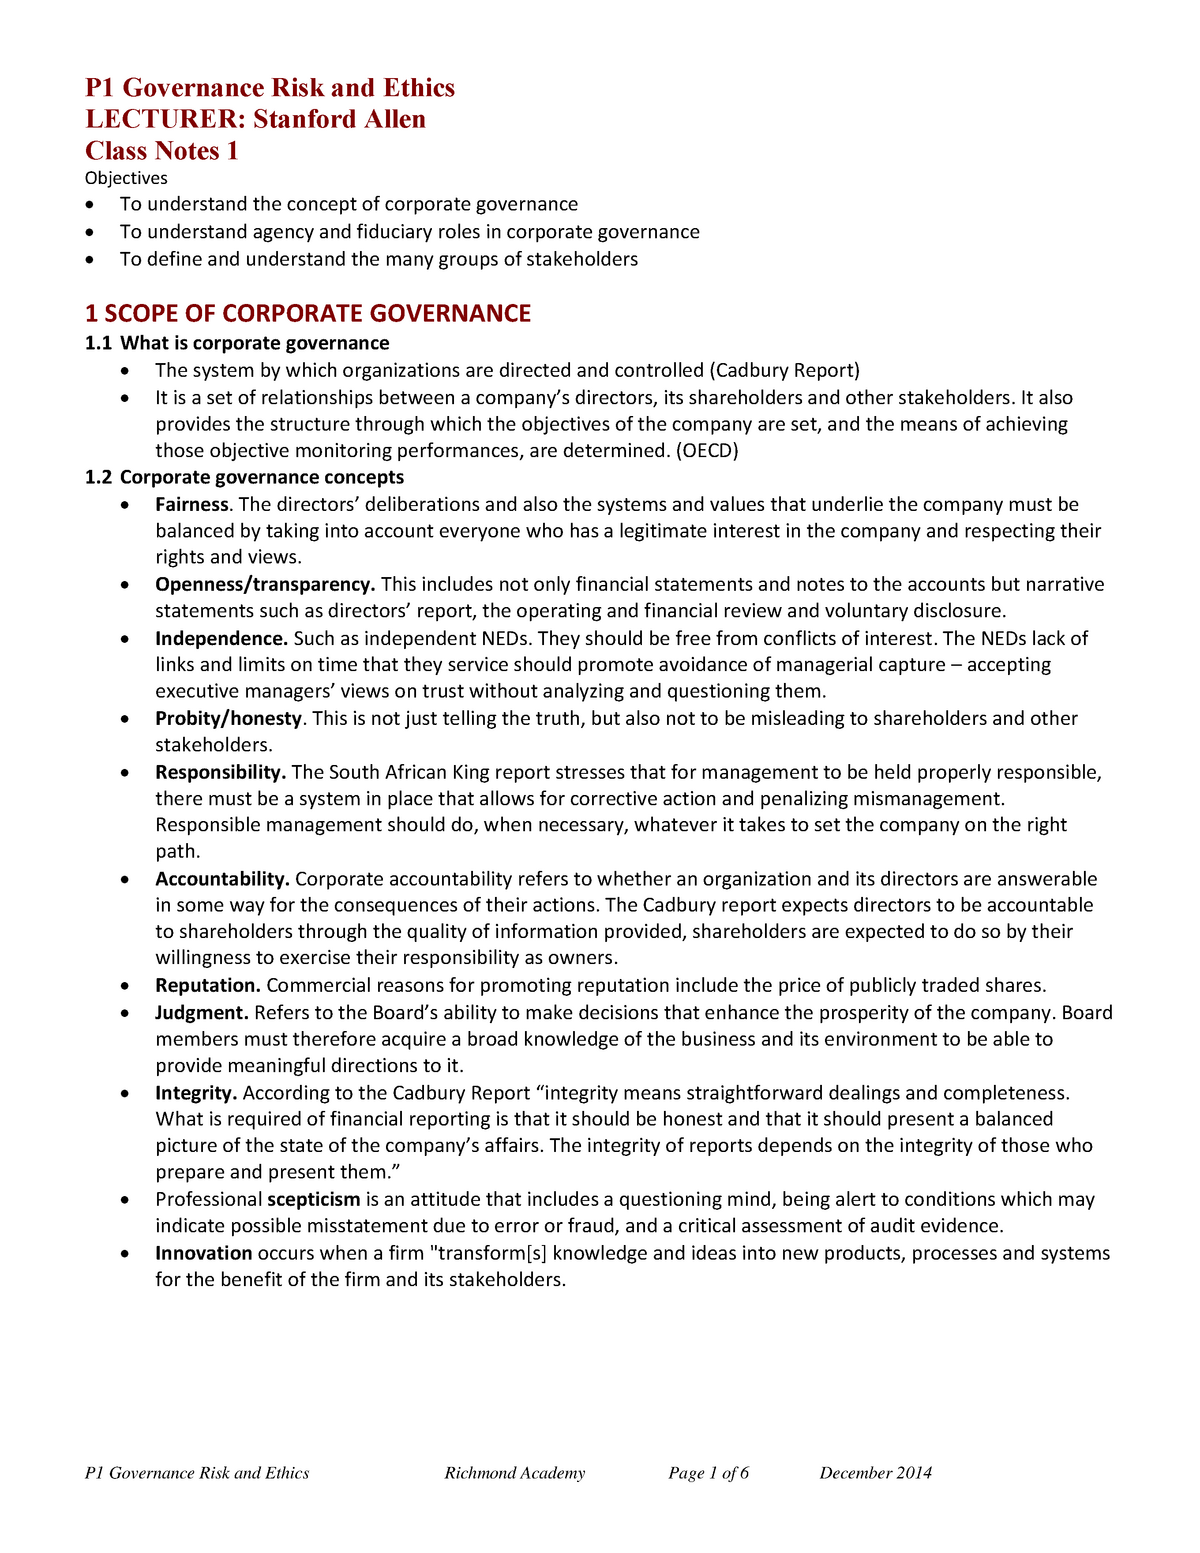 corporate governance law notes